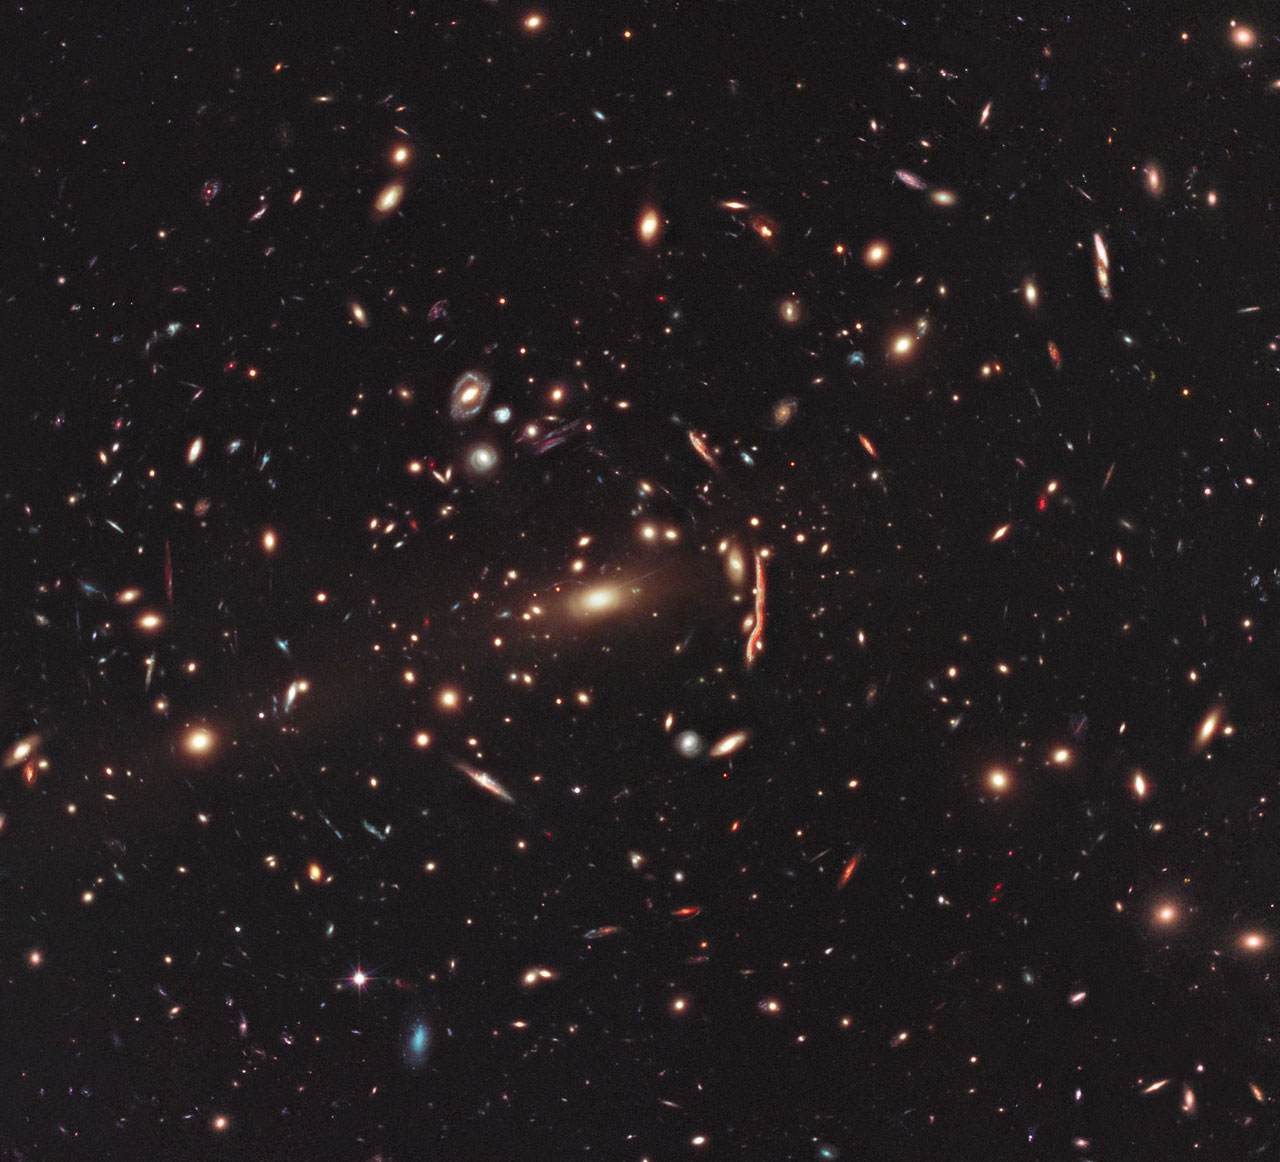 Hubble's View of Gravitational Lensing Cluster